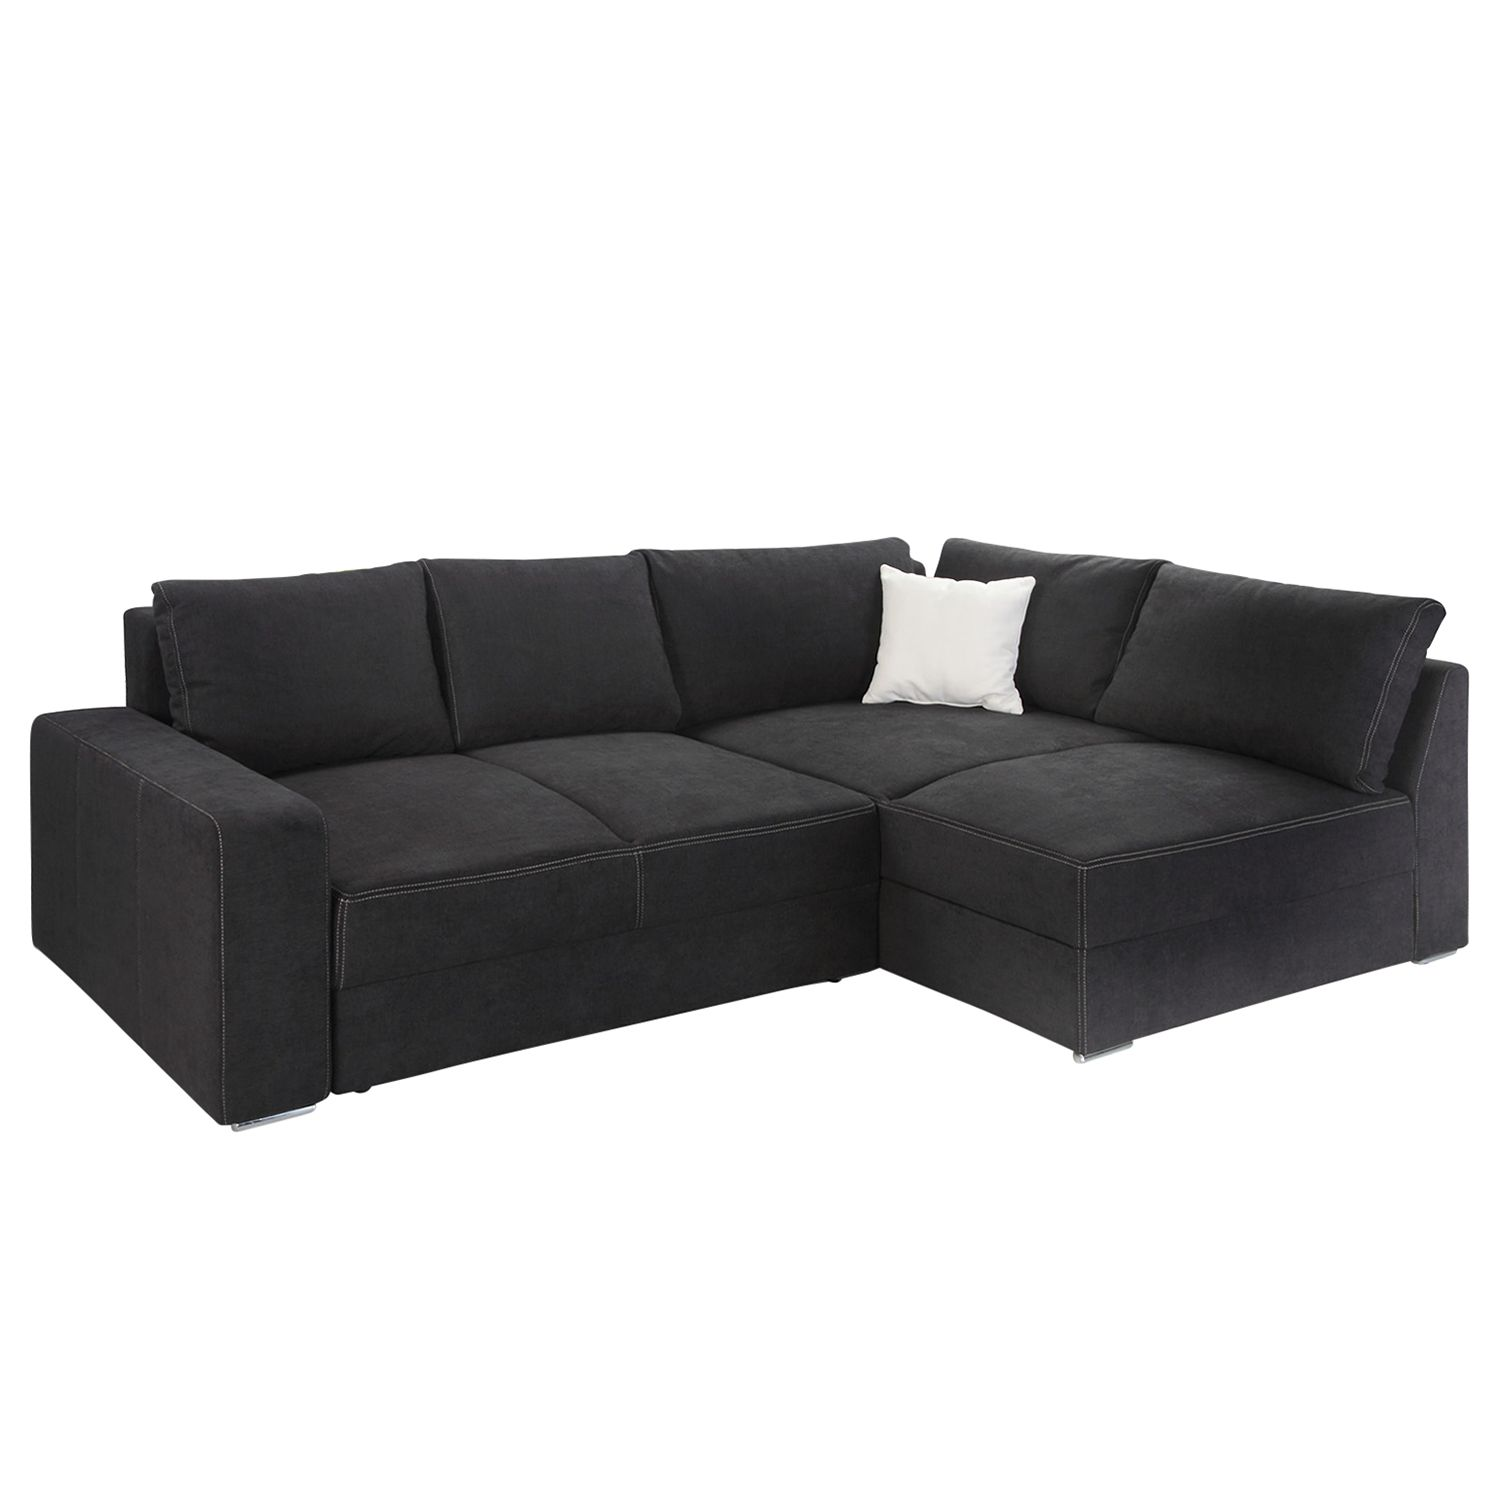 30 sparen boxspring ecksofa esbjerg 8 mit schlaffunktion nur 899 99 cherry m bel home24. Black Bedroom Furniture Sets. Home Design Ideas